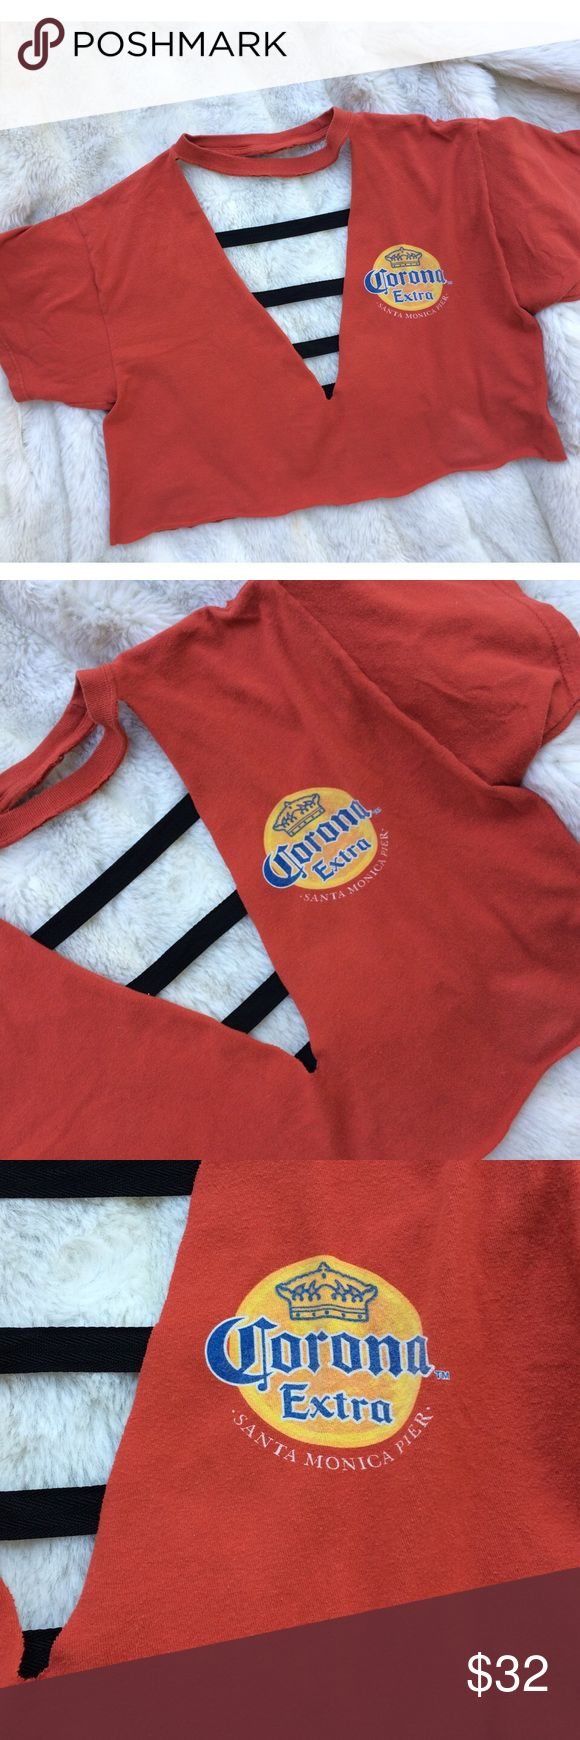 Custom Corona Santa Monica Beach Cut Out Crop Top Rare custom one of a kind shirt, handmade similar to LF. Orange color vintage santa monica beach Corona beer t-shirt, hand cut with professional scissors, perfect bathing suit cover up or over a cute bralette. Good condition minimal wear no significant flaws. Open back with sewn on black edging lining back ladder style. One size fits most, can fit best small/medium NOT LF tagged for similar style. FREE SURPRISE GIFT WITH EVERY ORDER! LF Tops…